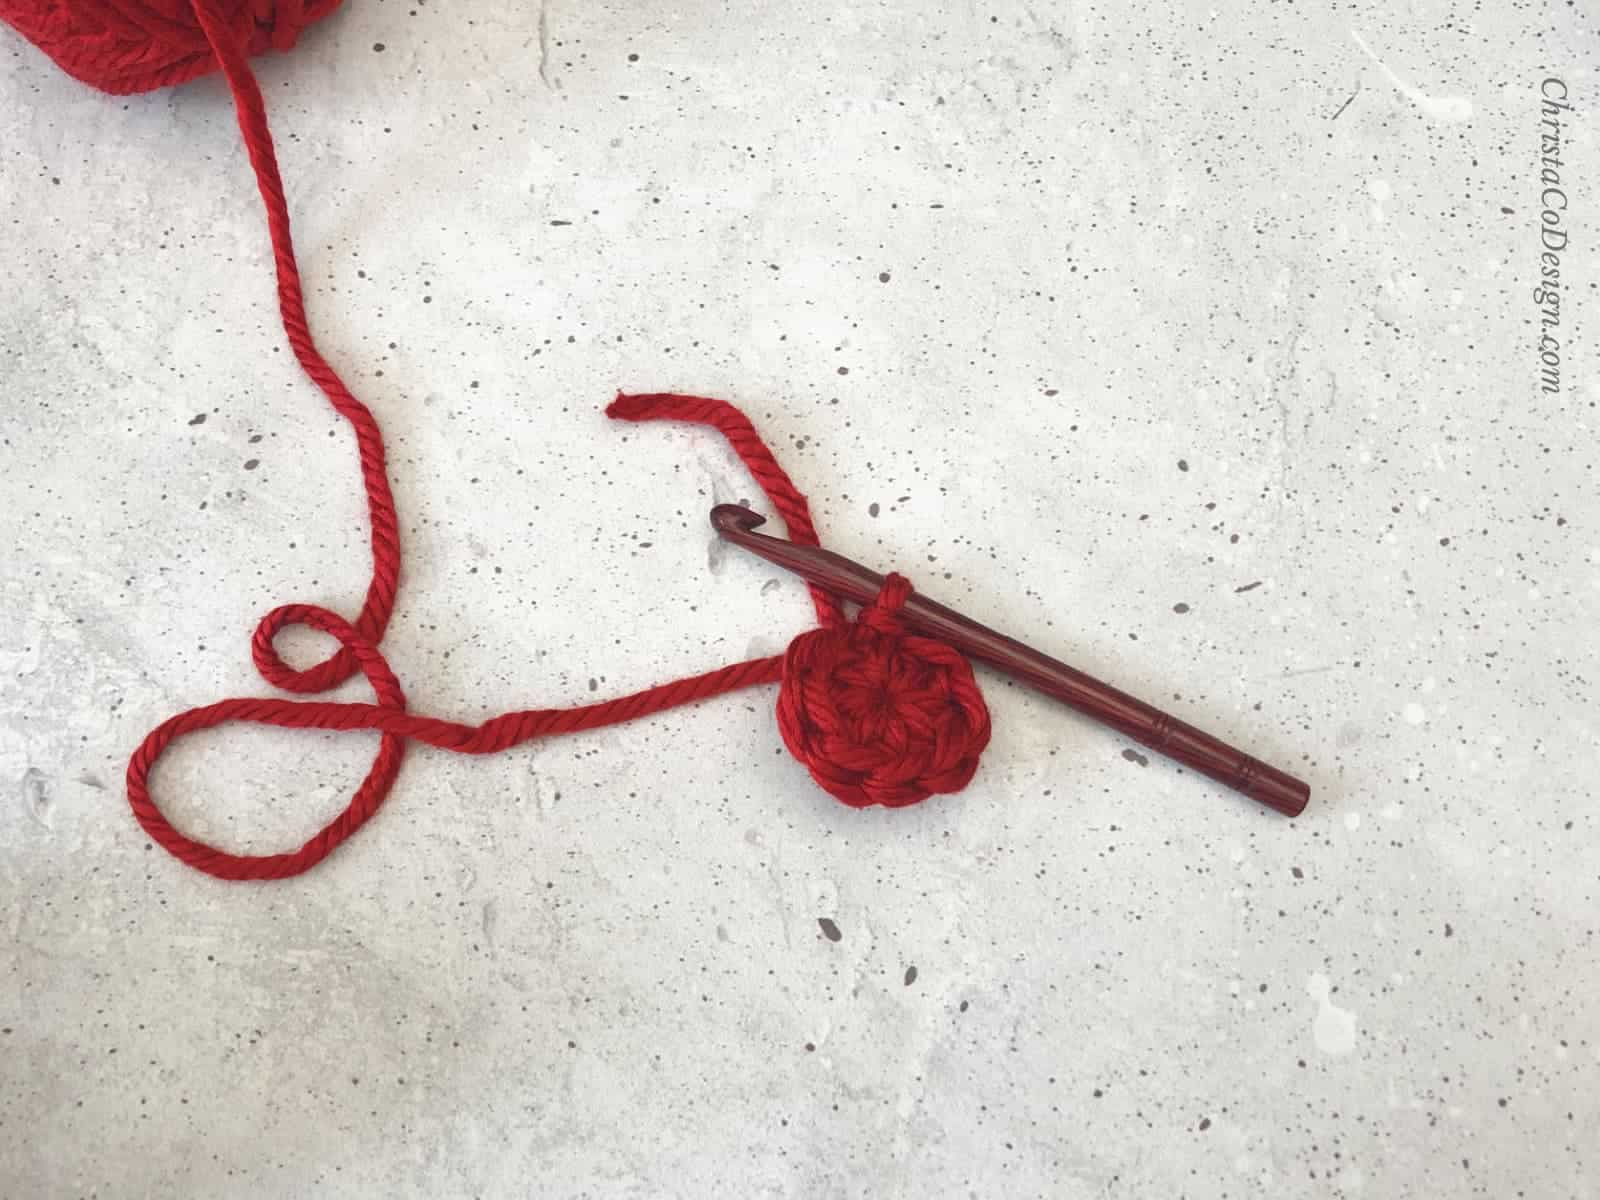 Crochet circle in red.